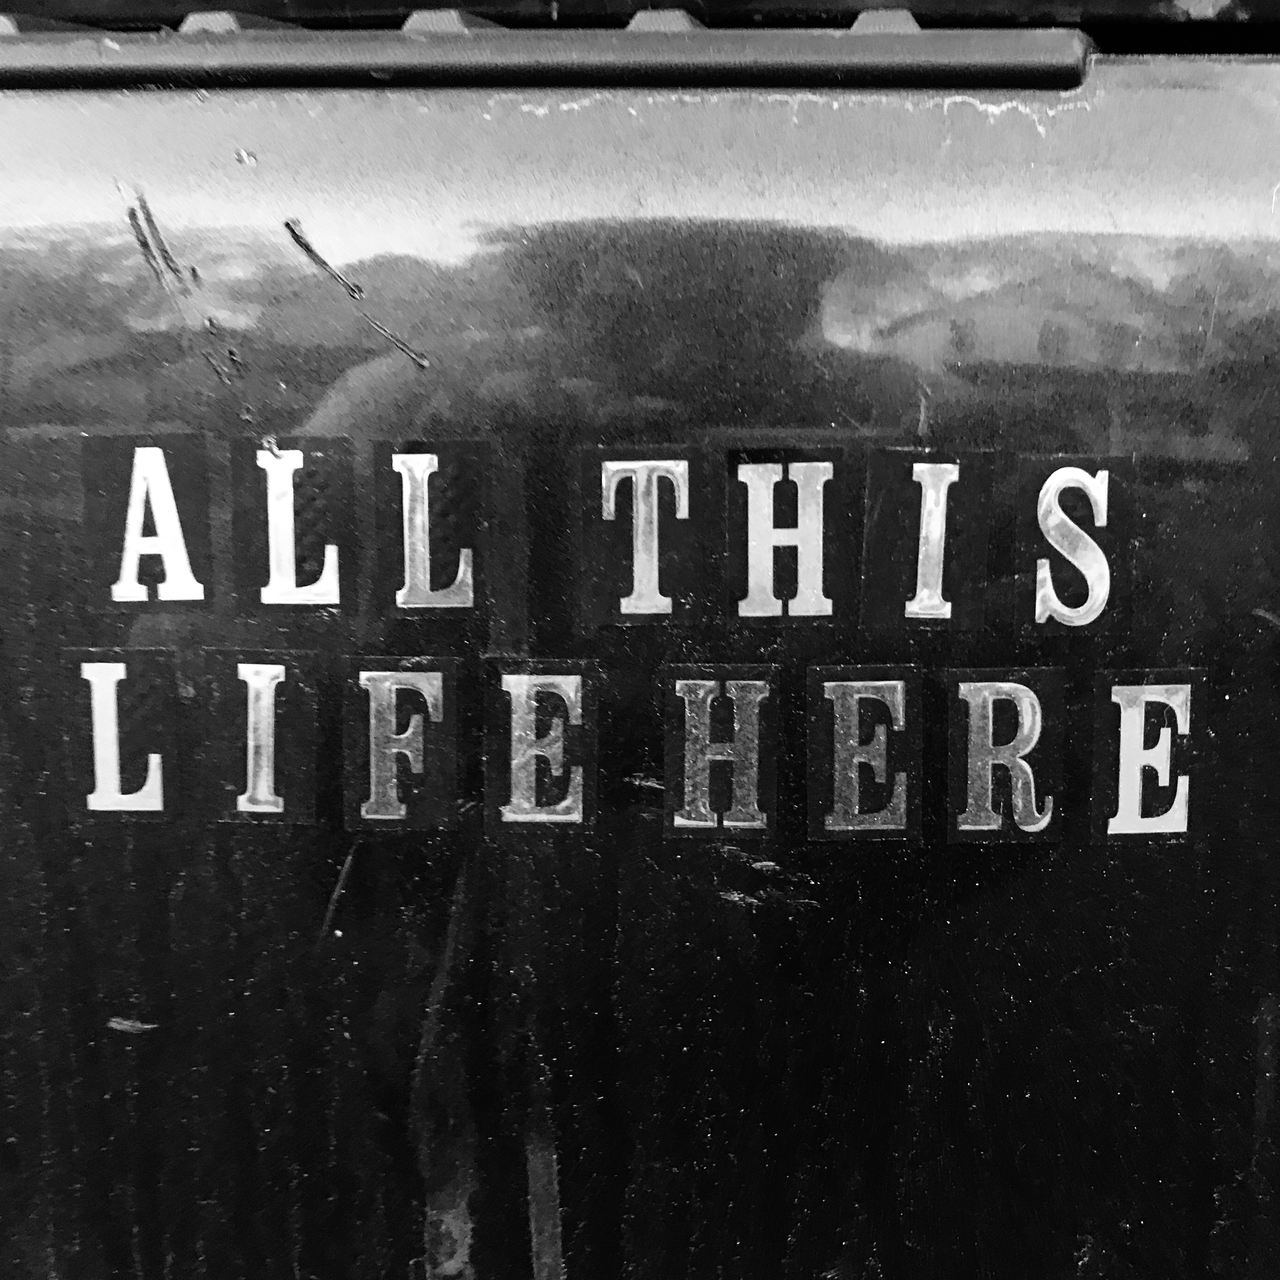 All This Life Here